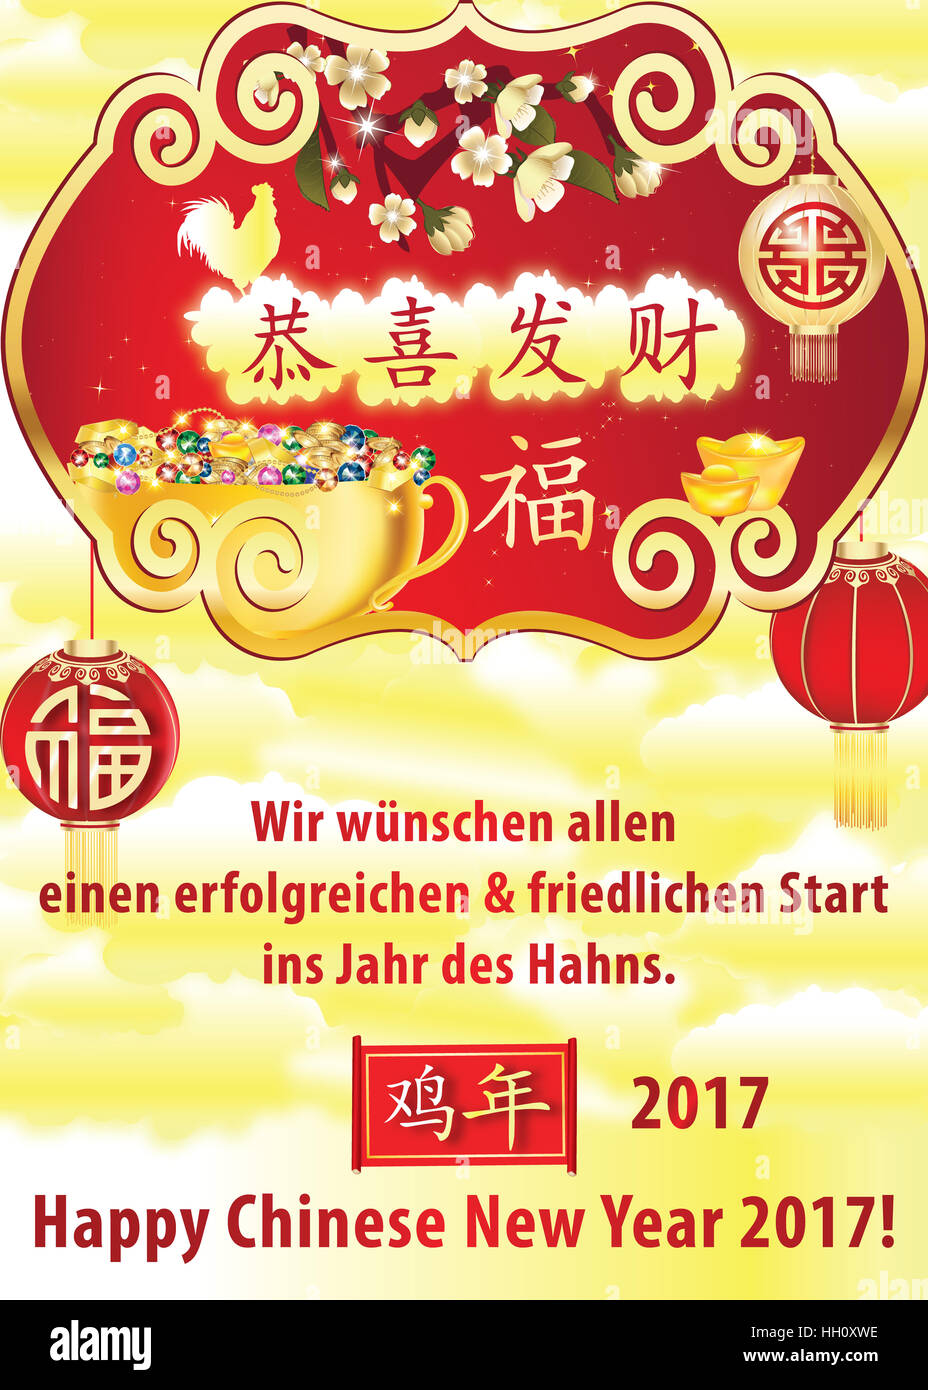 German business greeting card for Chinese New Year 2017, for print ...